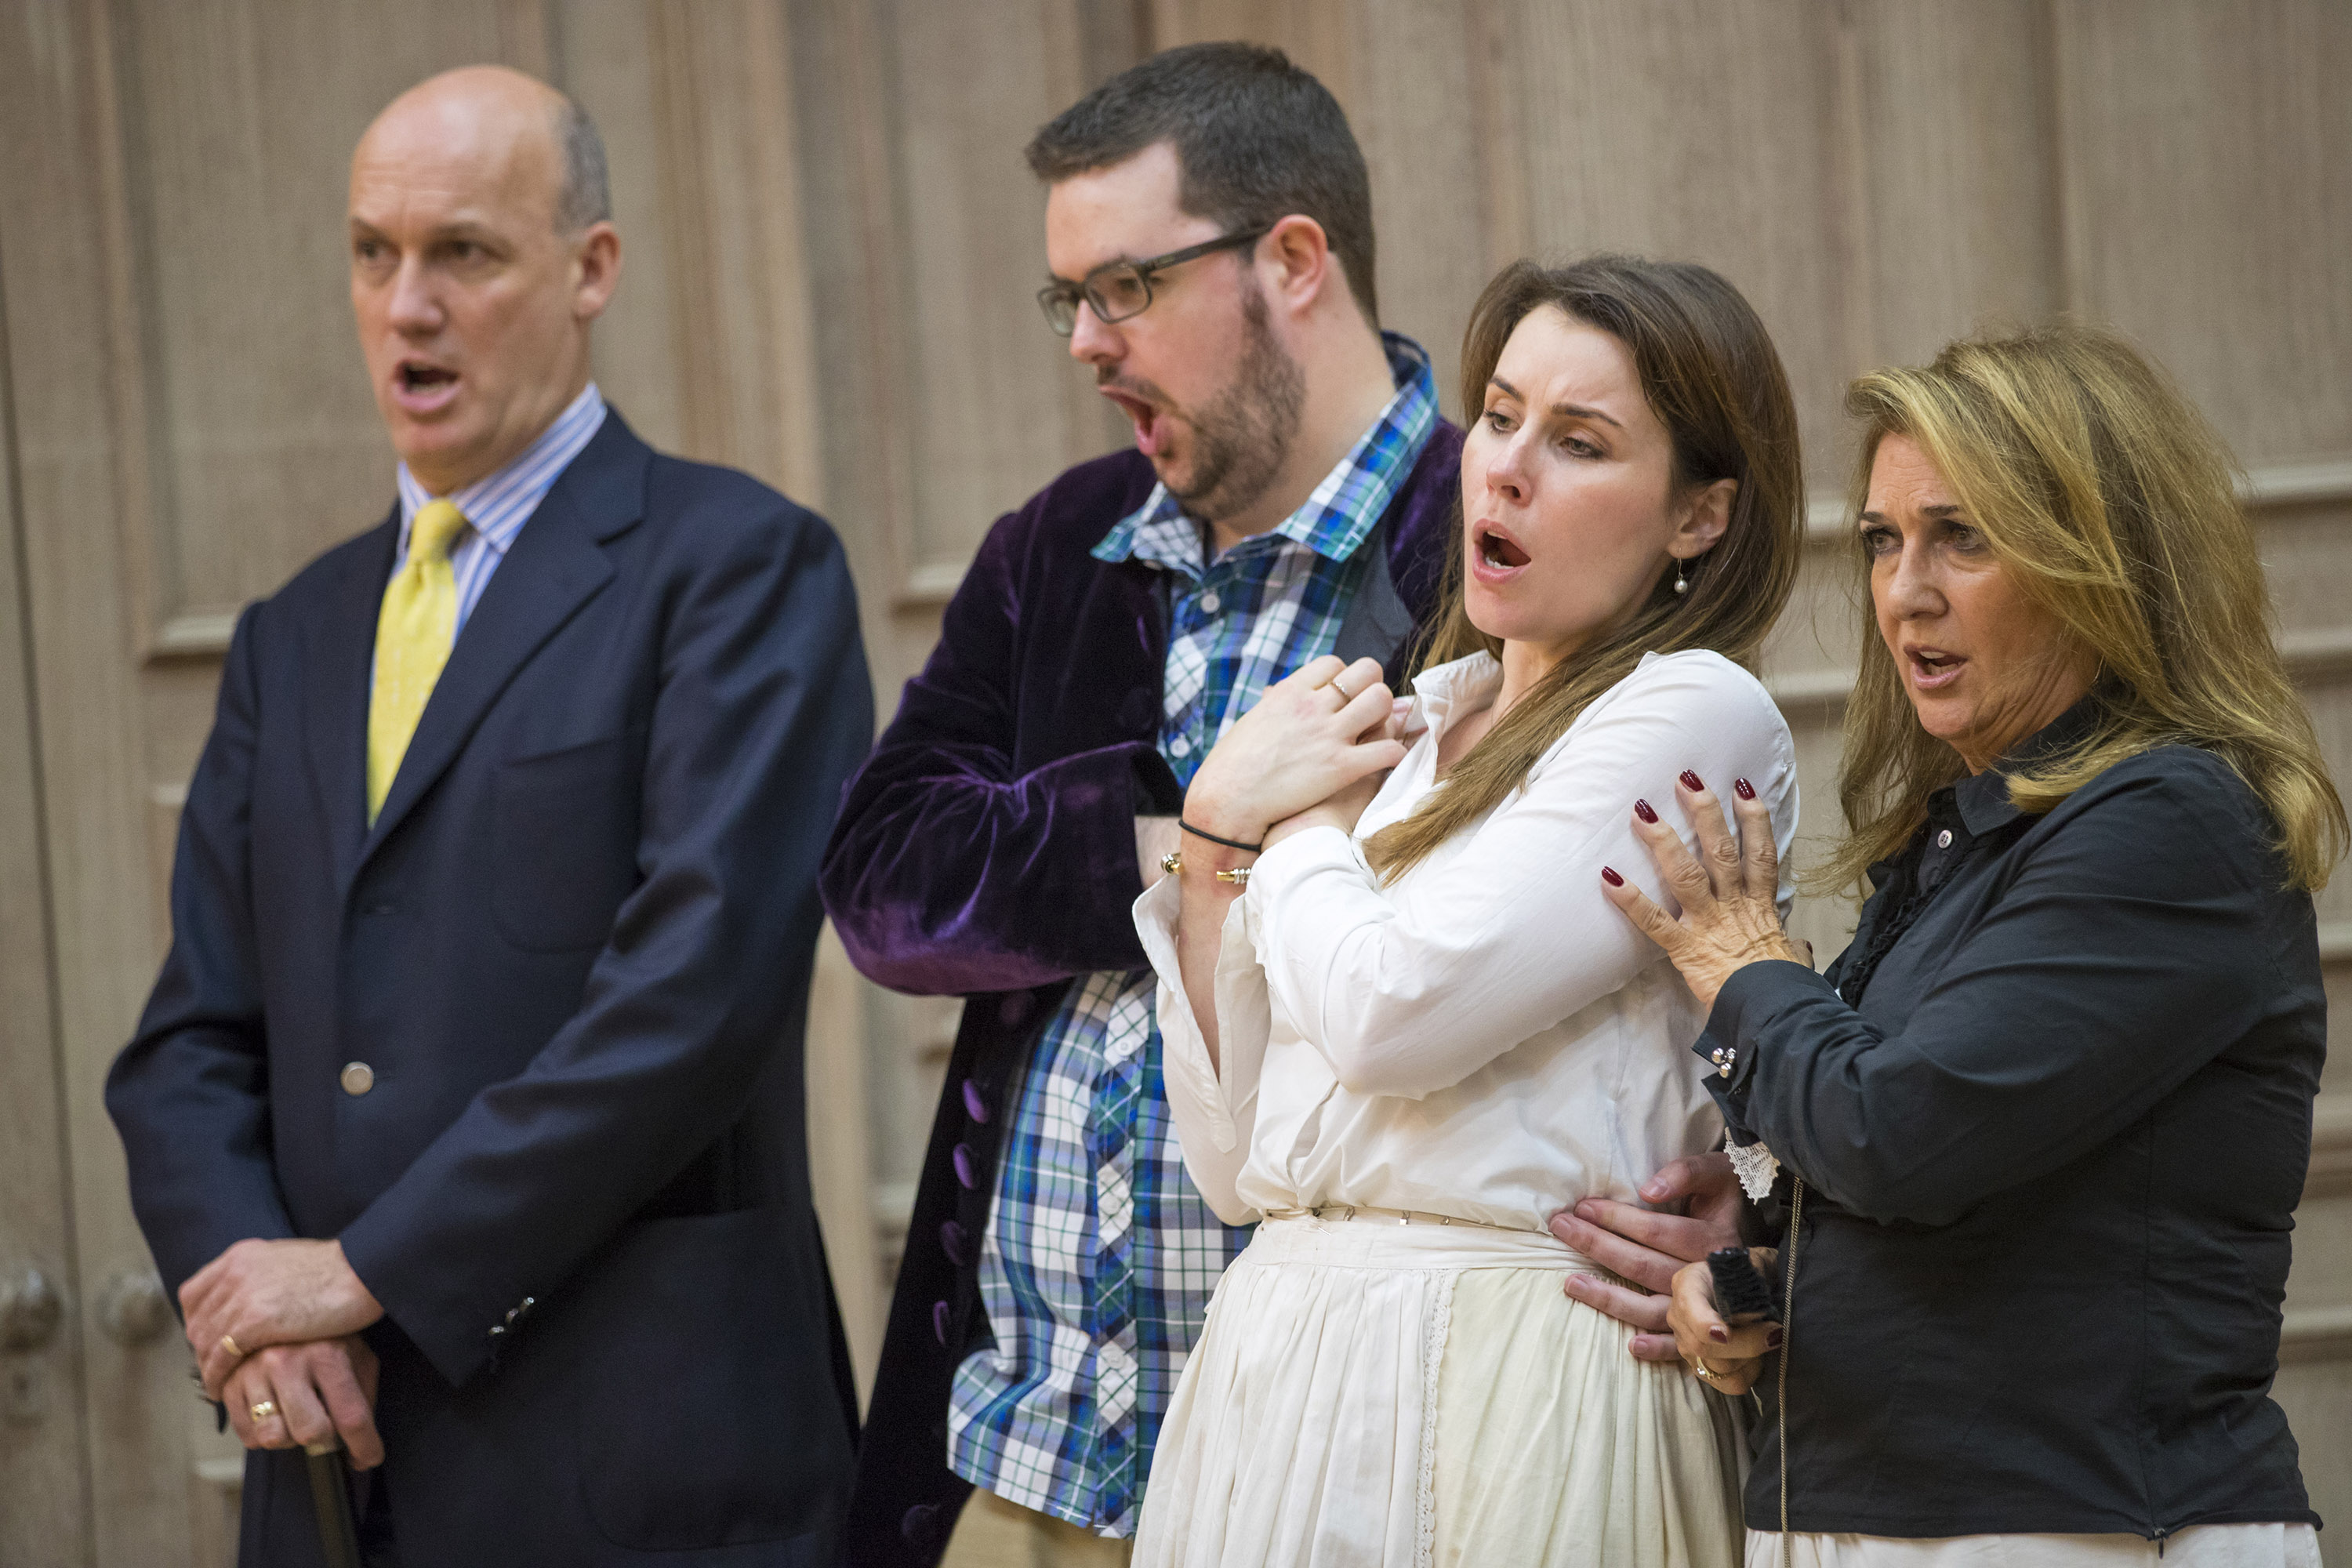 graeme-broadbent-ben-mcateer-anna-devin-and-marie-mclaughlin-at-rehearsals-for-the-marriage-of-figaro-scottish-opera-2016-credit-james-glossop